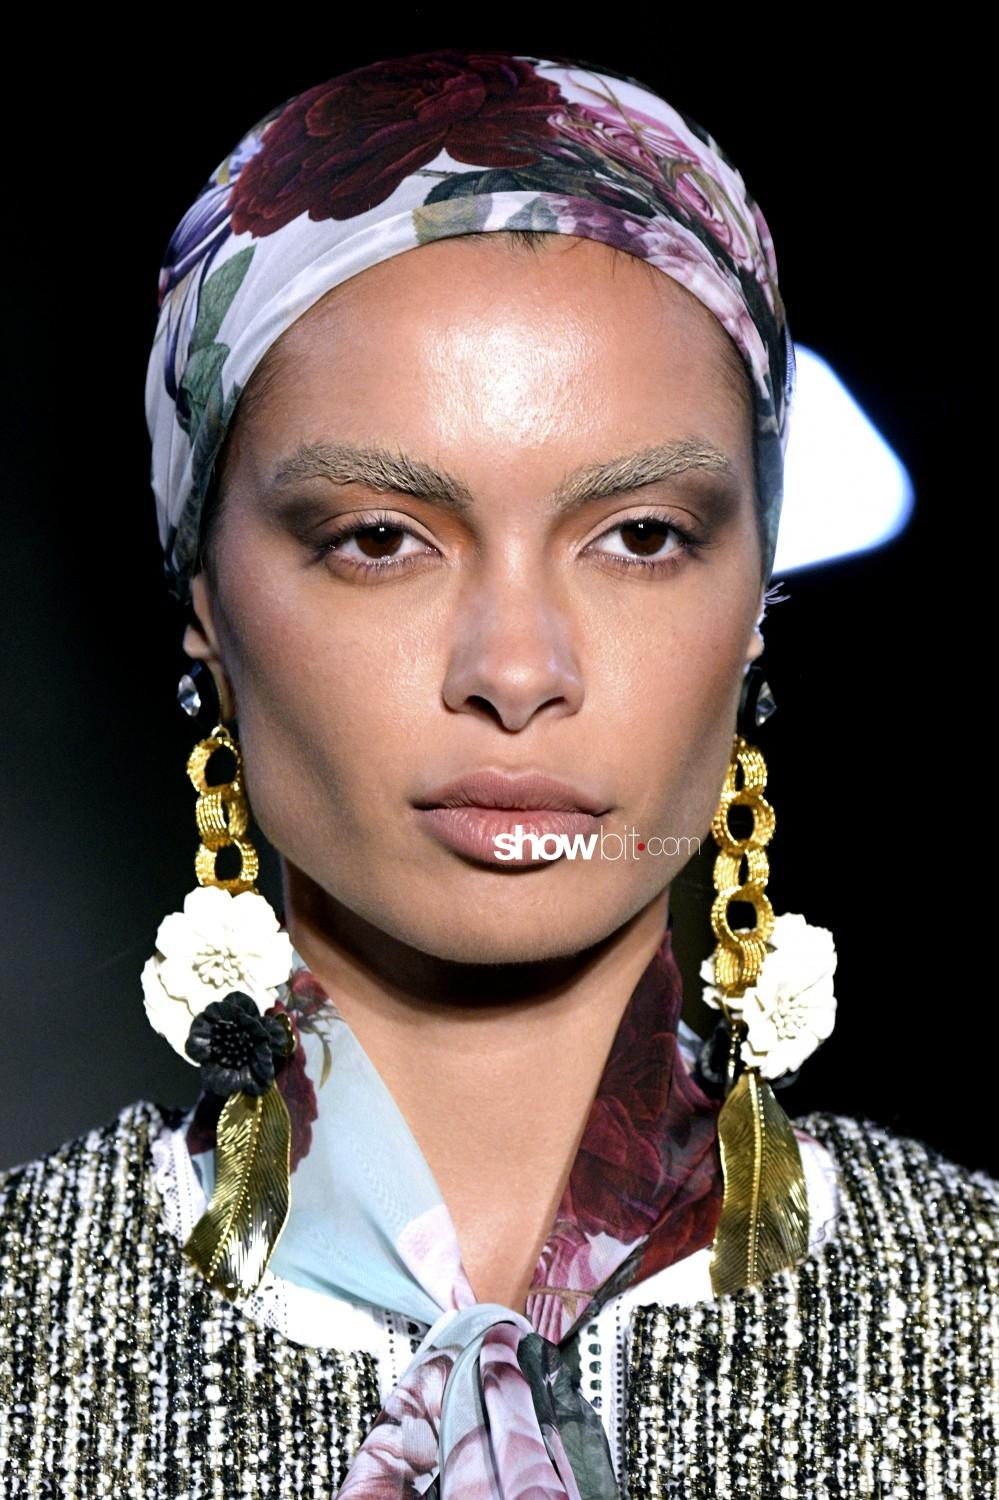 Yolancris beauty runway Haute Couture Fall Winter 2019 2020 Paris